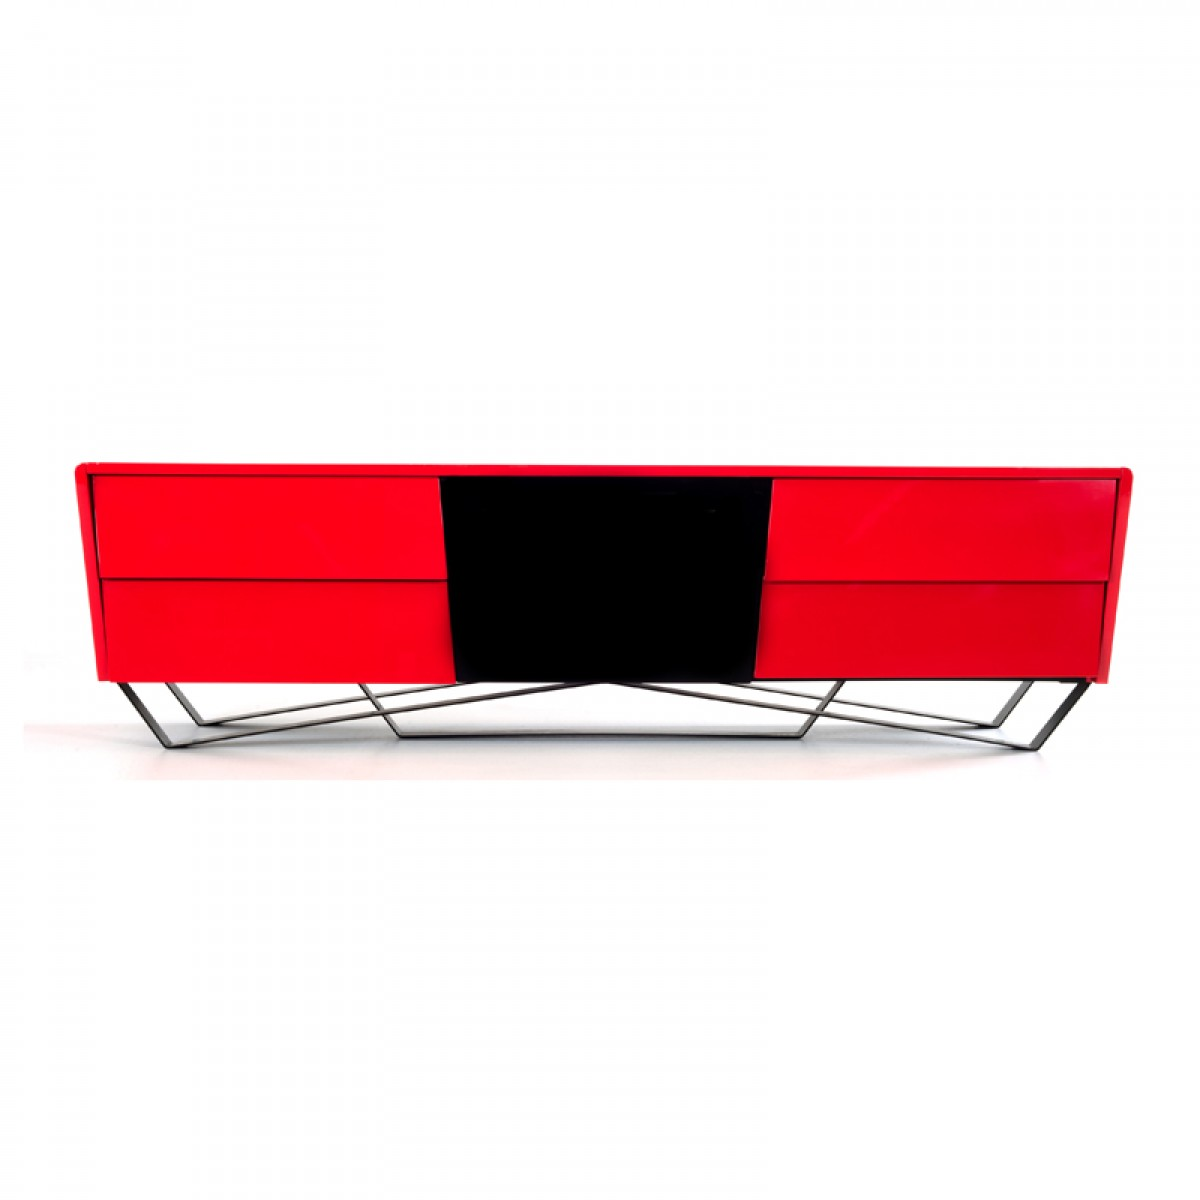 Nova Domus Max Modern Red TV Stand - Entertainment Centers - Living Room